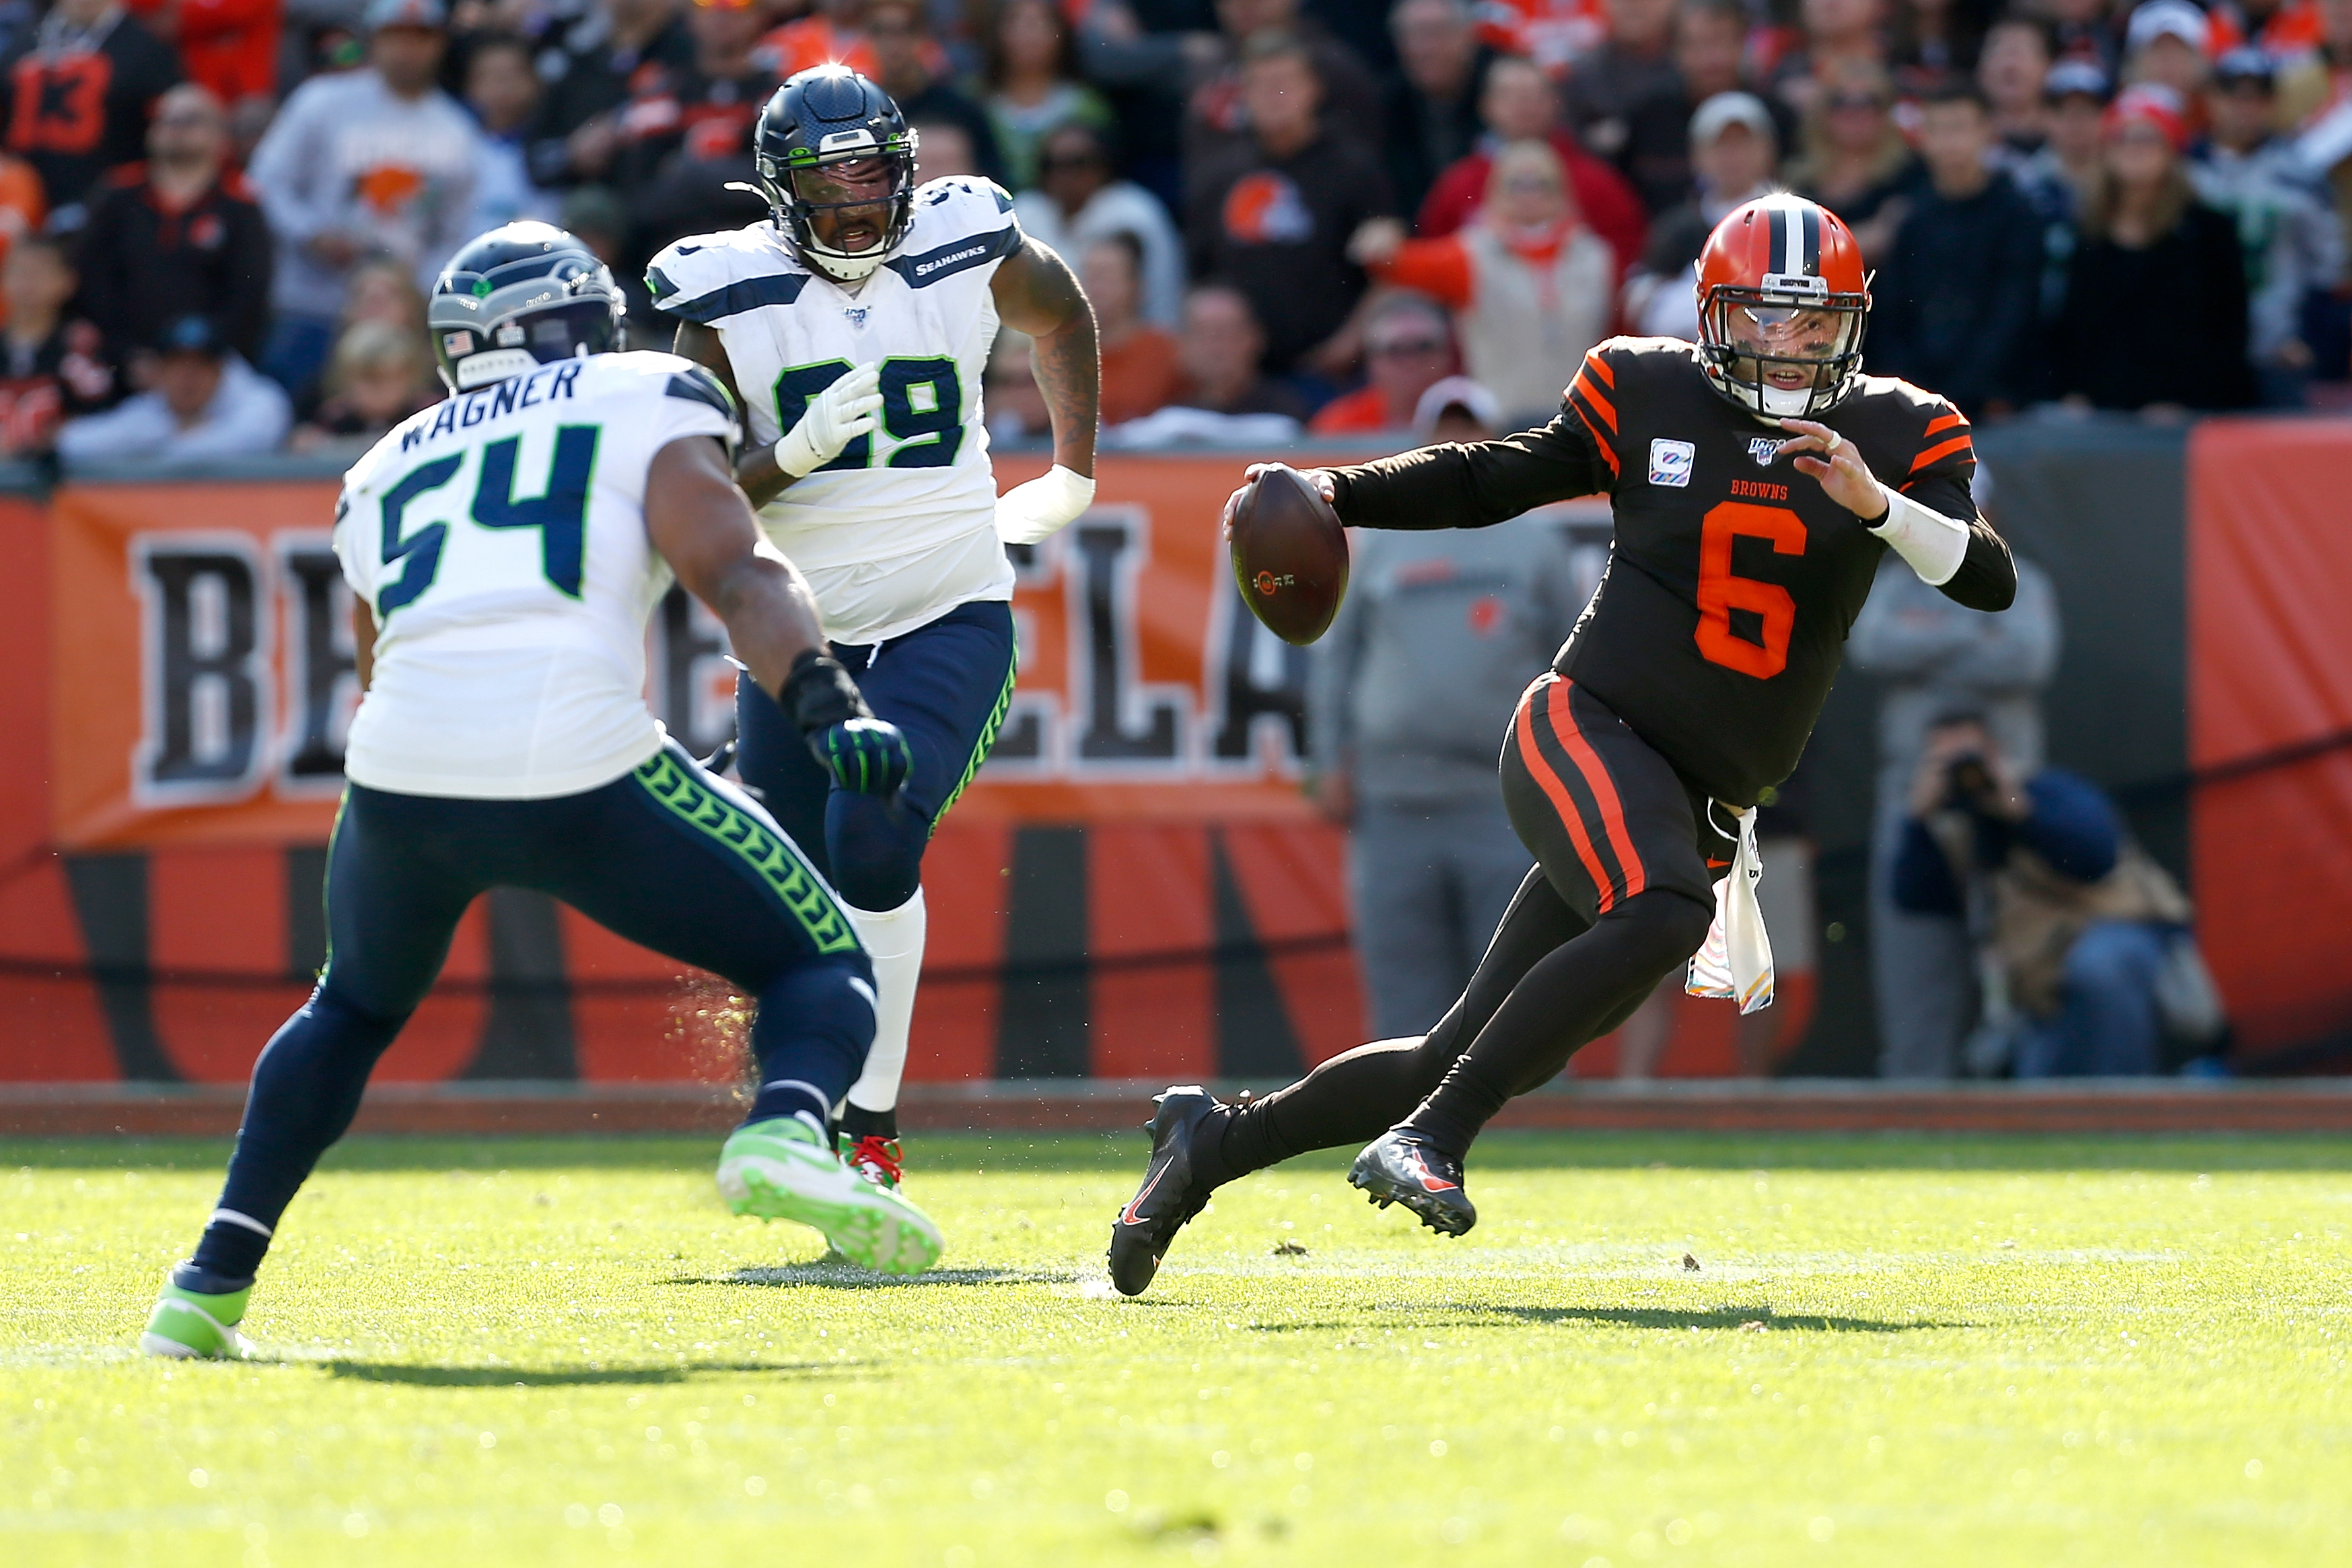 Baker Mayfield of the Cleveland Browns attempts to run the ball past Bobby Wagner of the Seattle Seahawks during the third quarter at FirstEnergy Stadium on October 13, 2019 in Cleveland, Ohio.